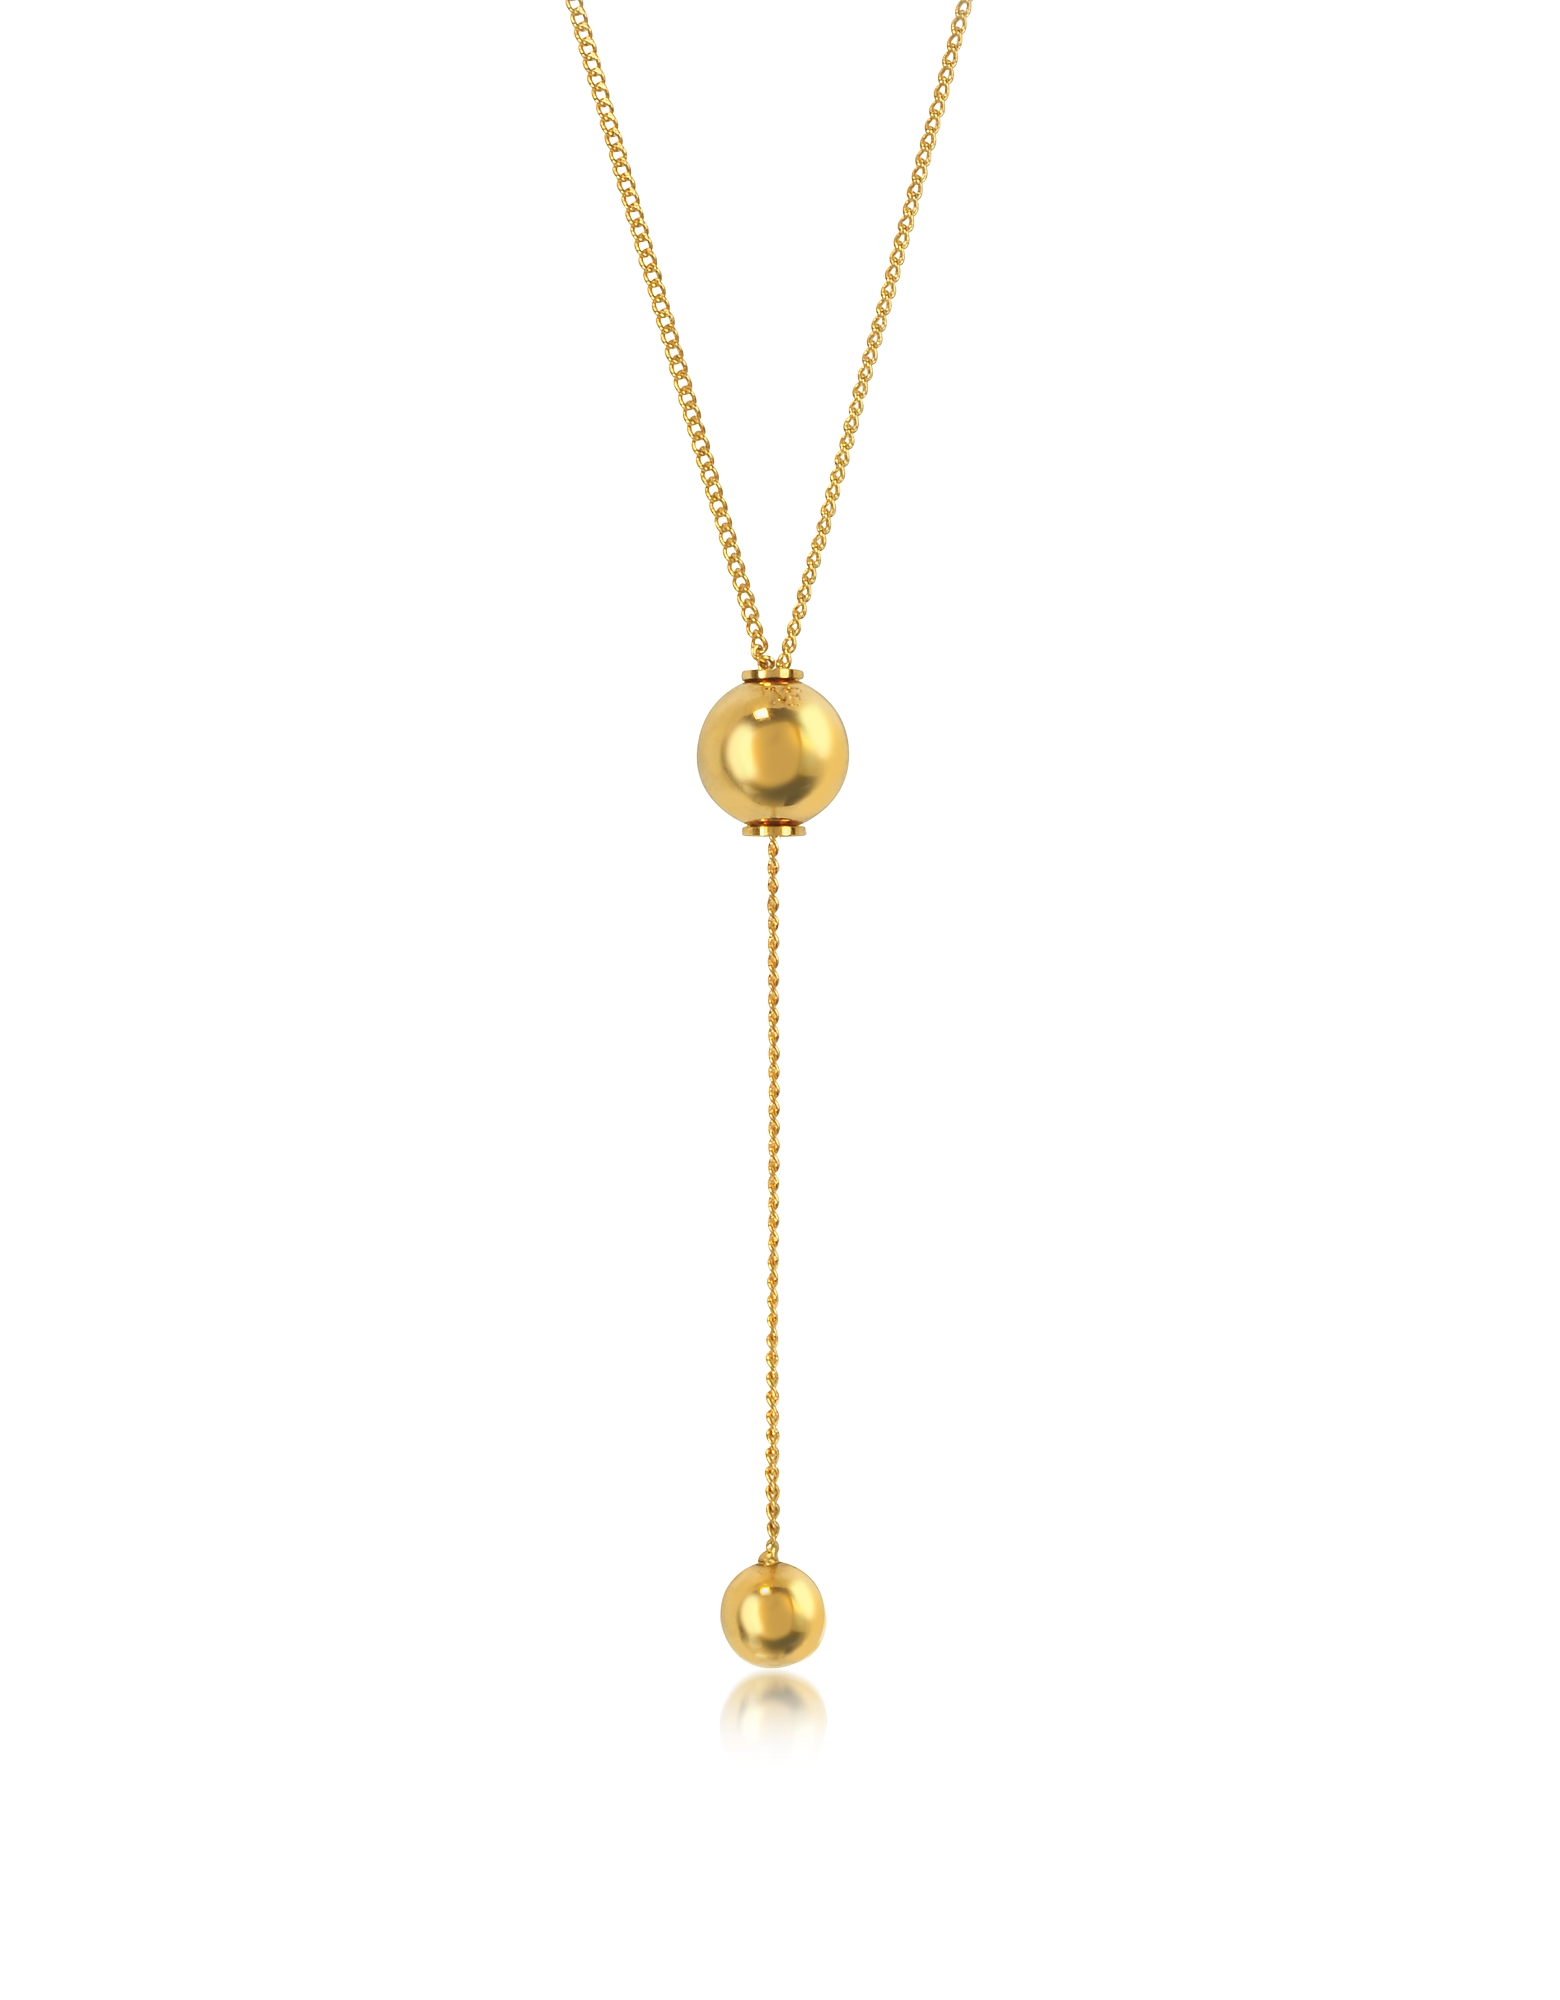 Vita Fede Necklaces, O'hara Gold Tone Drop Lariat Necklace